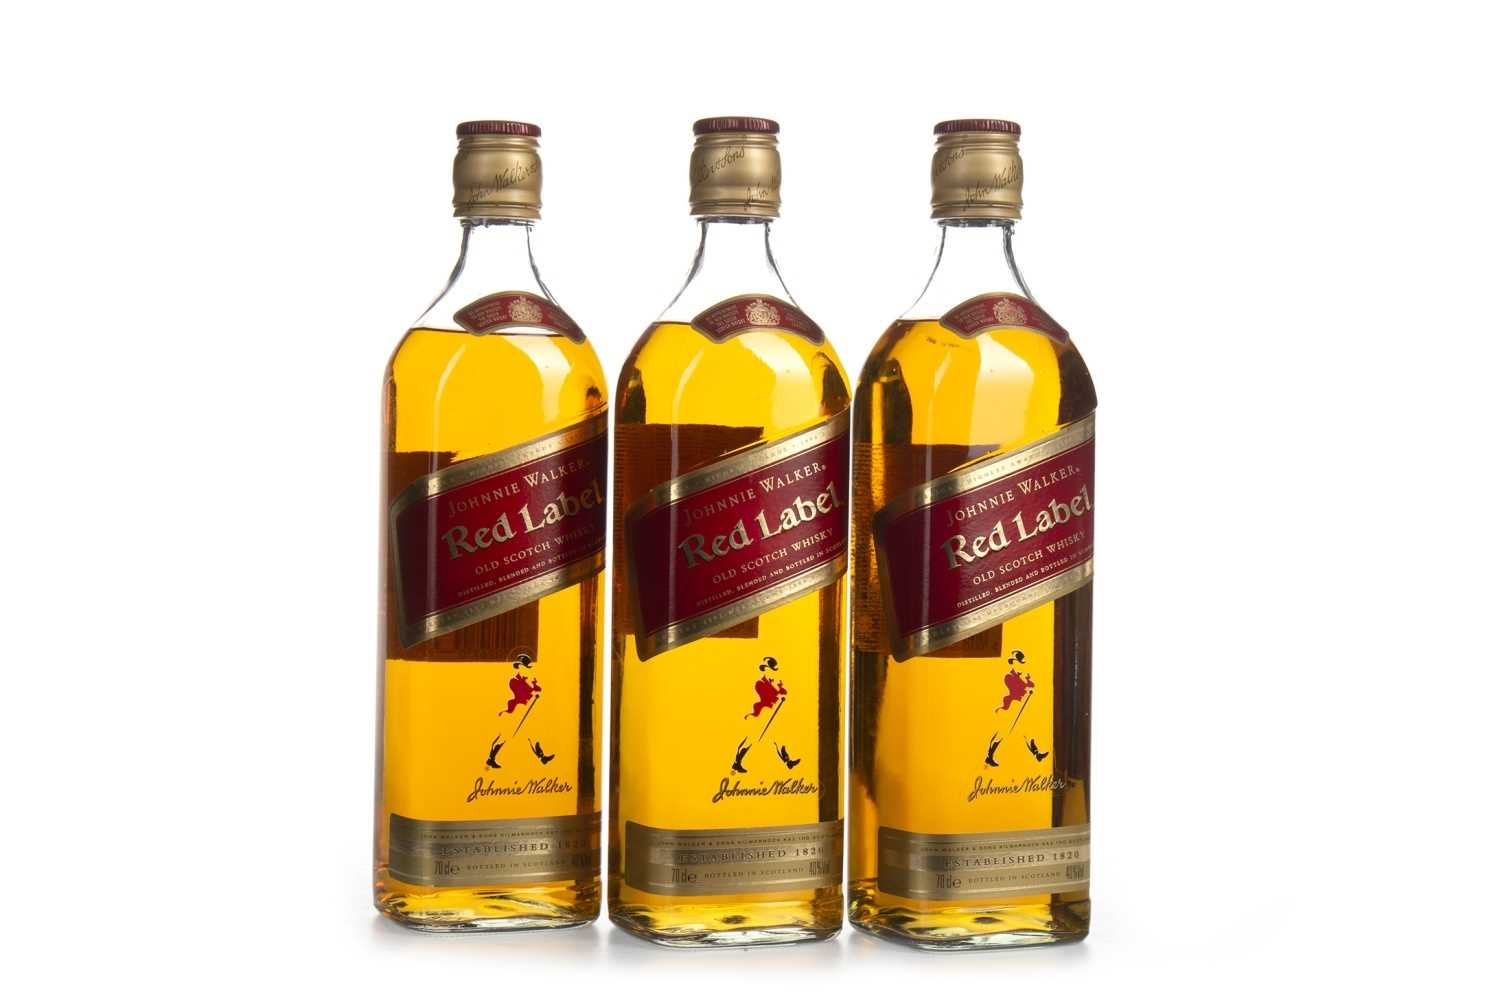 Lot 411-THREE BOTTLES OF JOHNNIE WALKER RED LABEL